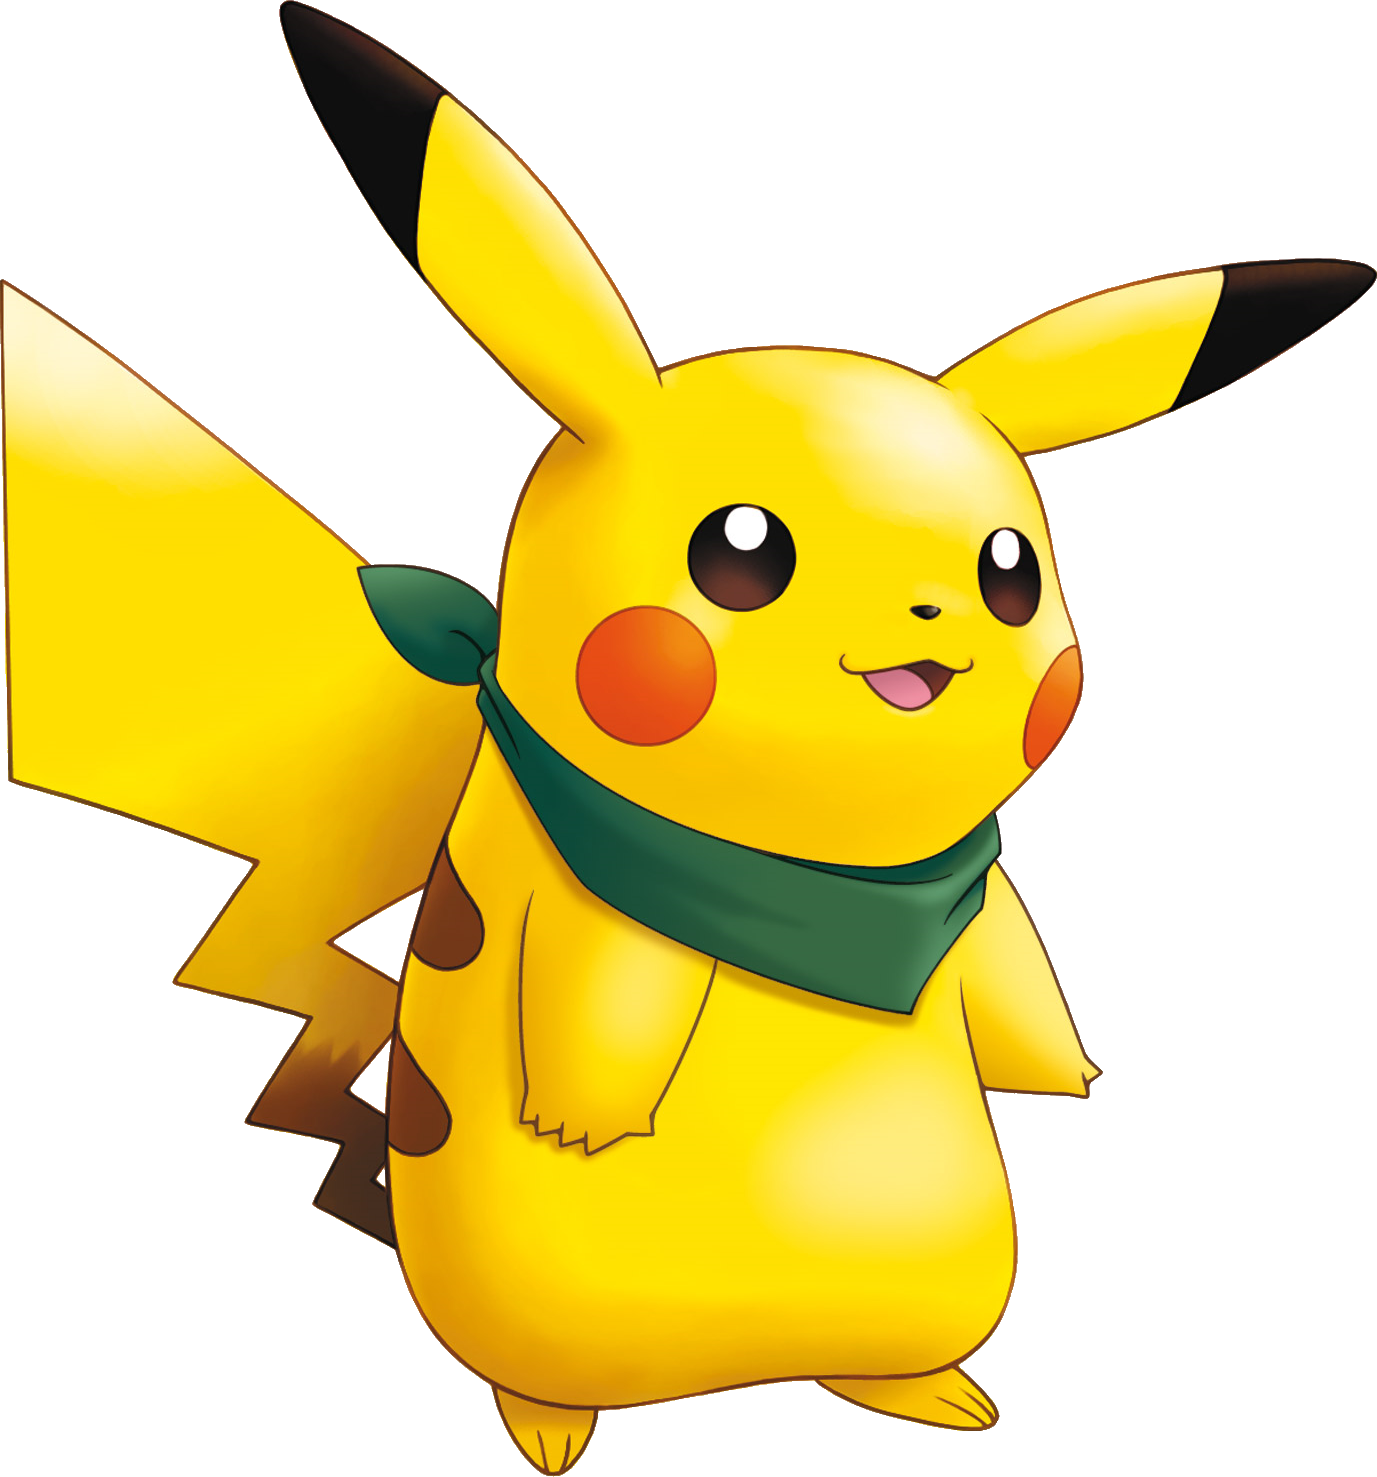 Image - 025Pikachu Pokemon Mystery Dungeon Explorers of Sky.png | Pokémon  Wiki | FANDOM powered by Wikia - Pokemon HD PNG